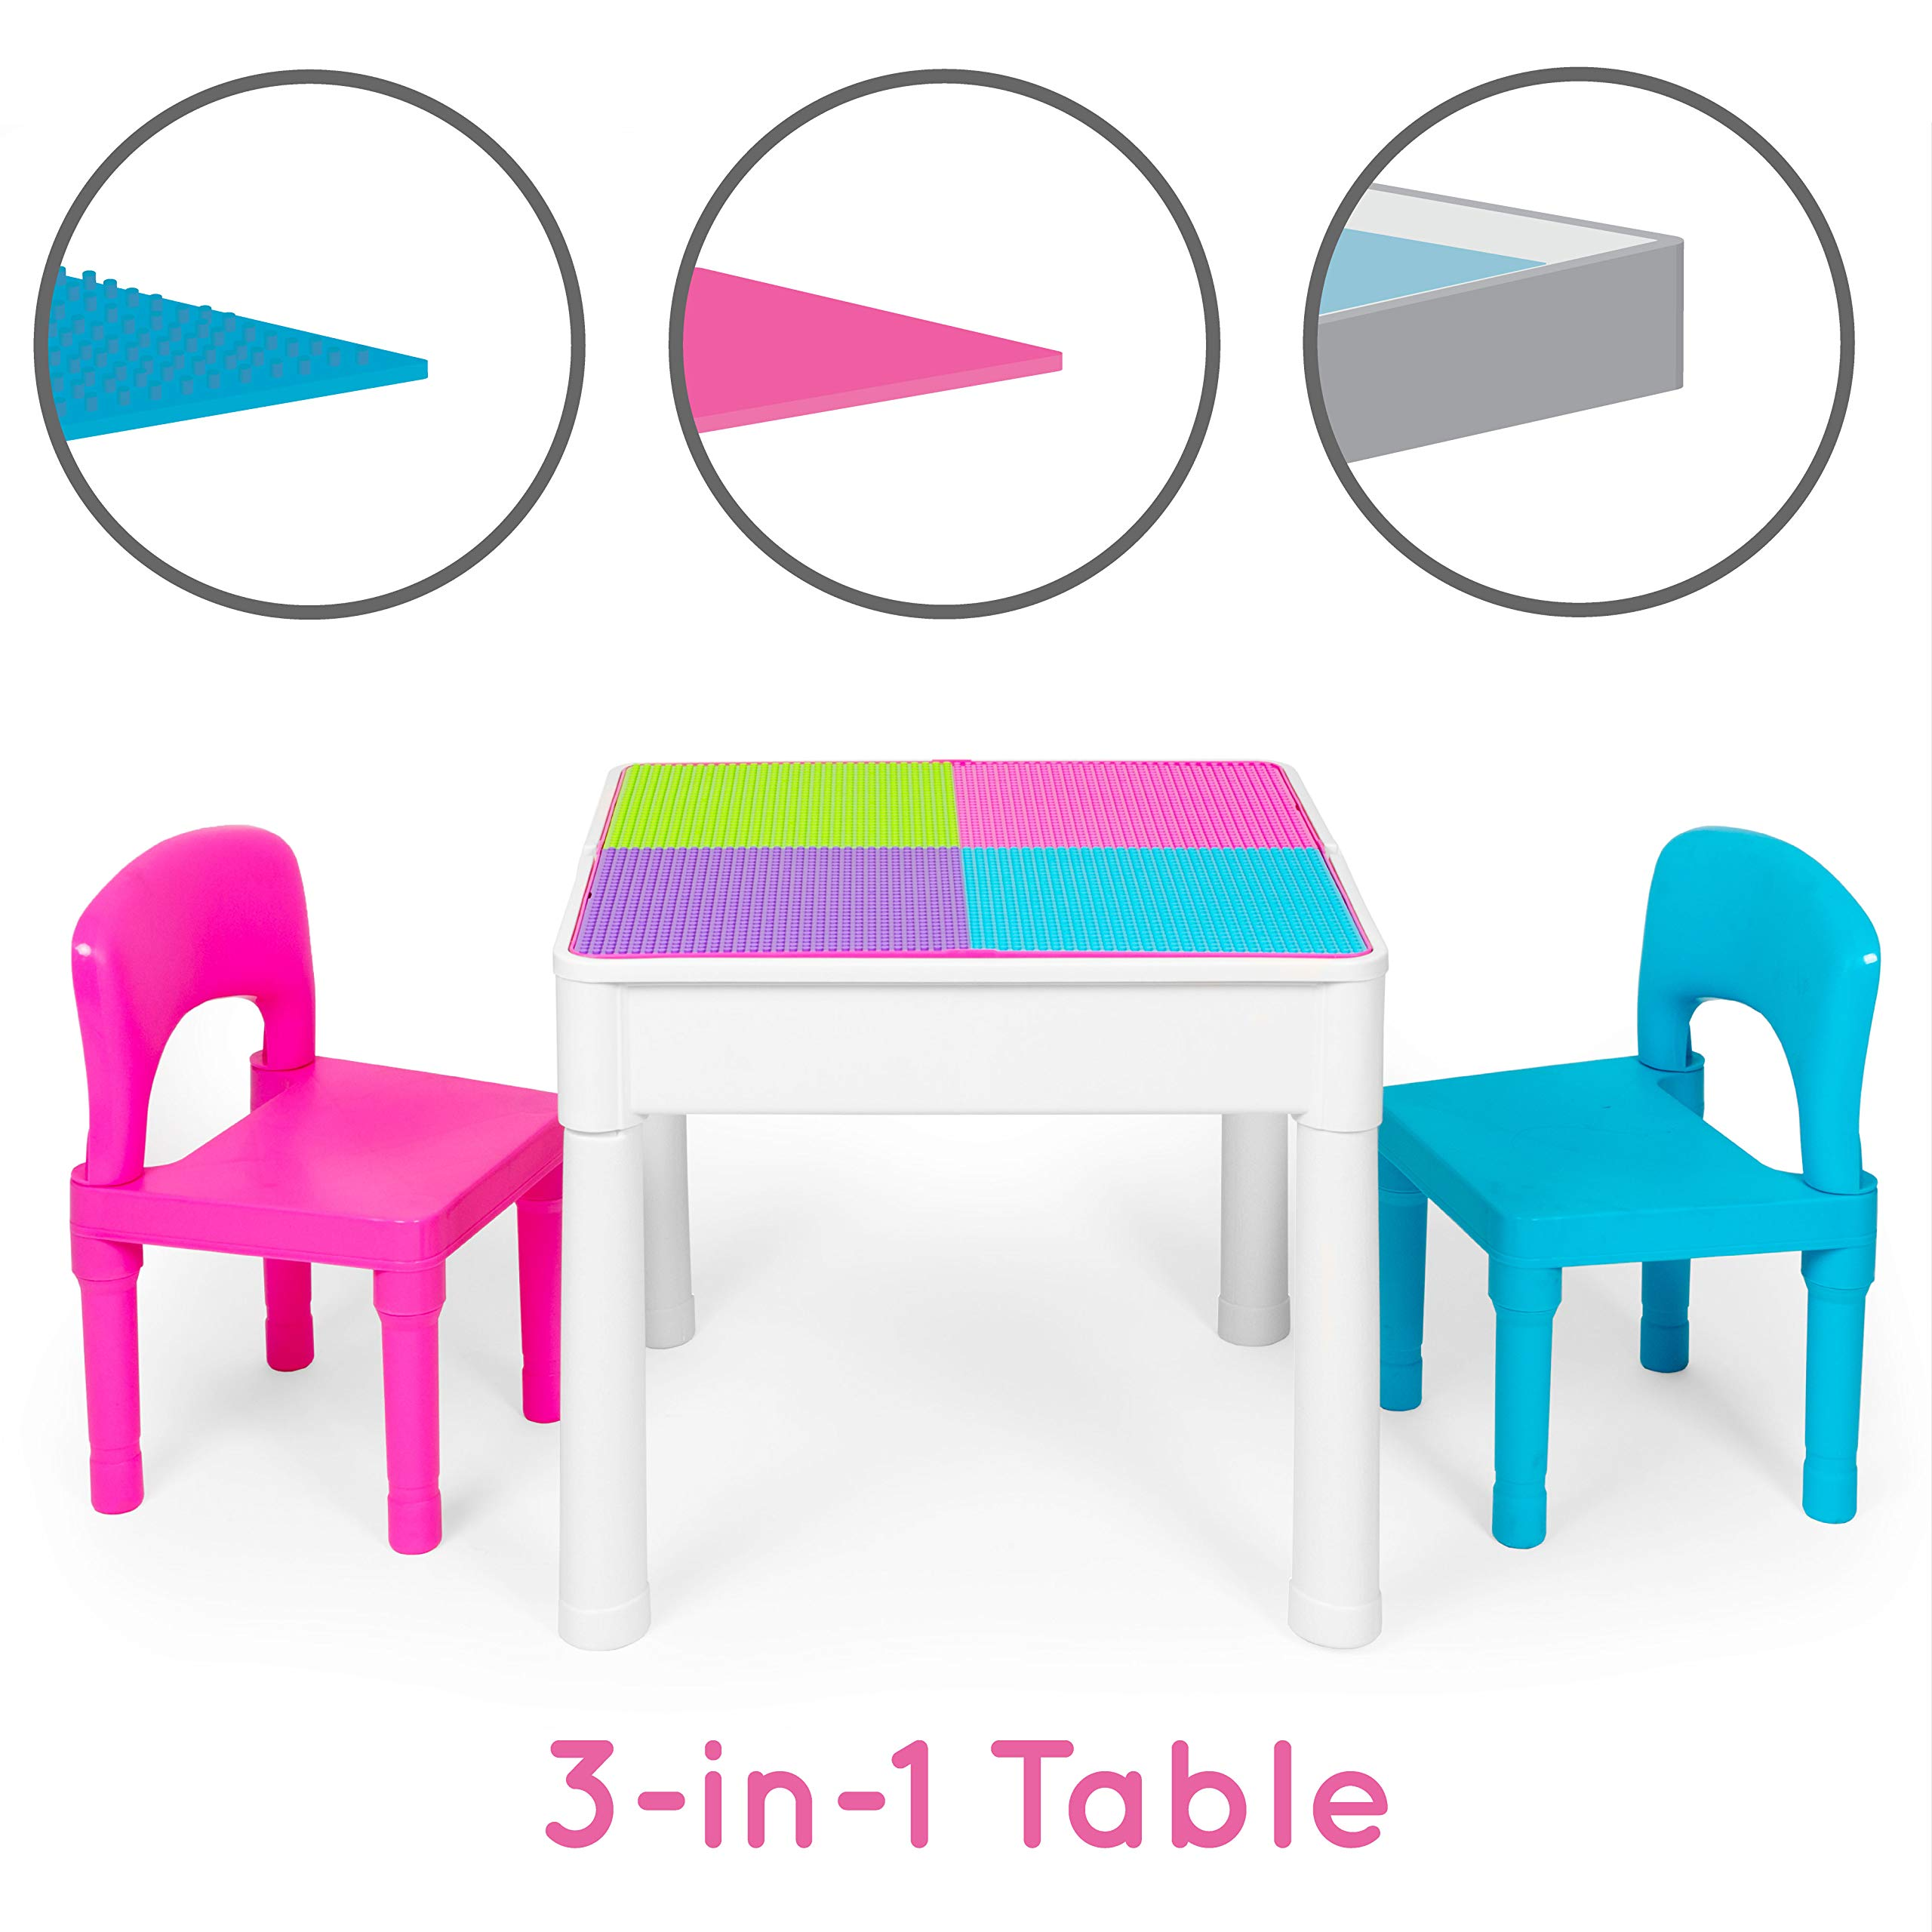 Kids Activity Table Set - 3 in 1 Water Table, Craft Table and Building Brick Table with Storage - Includes 2 Chairs and 25 Jumbo Bricks - Pastel Colors by Play Platoon